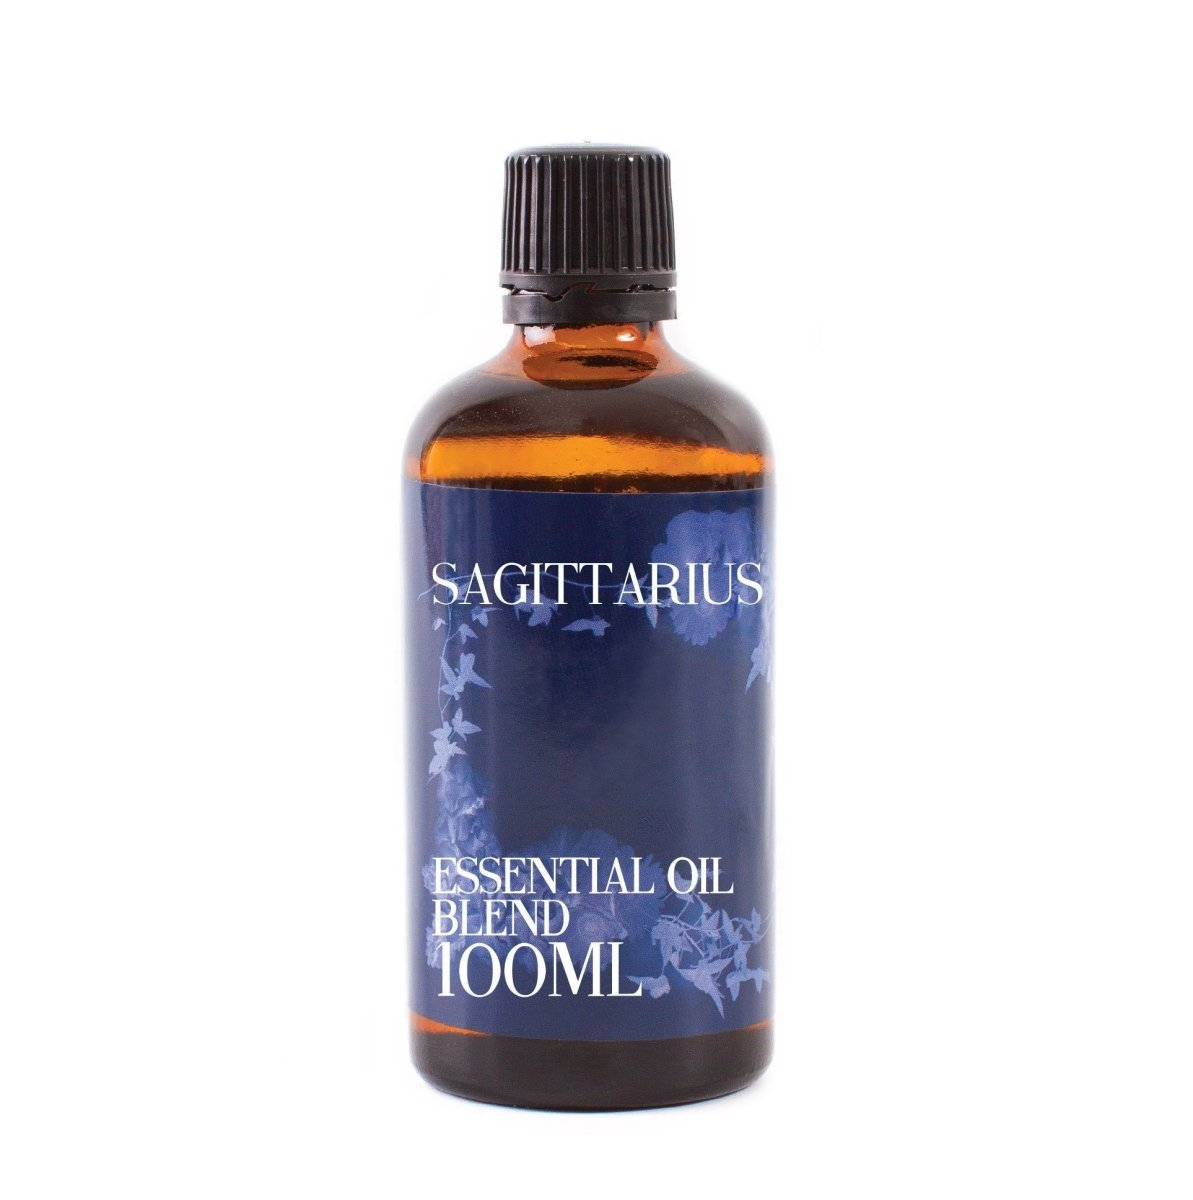 Sagittarius - Zodiac Sign Astrology Essential Oil Blend - Mystic Moments UK